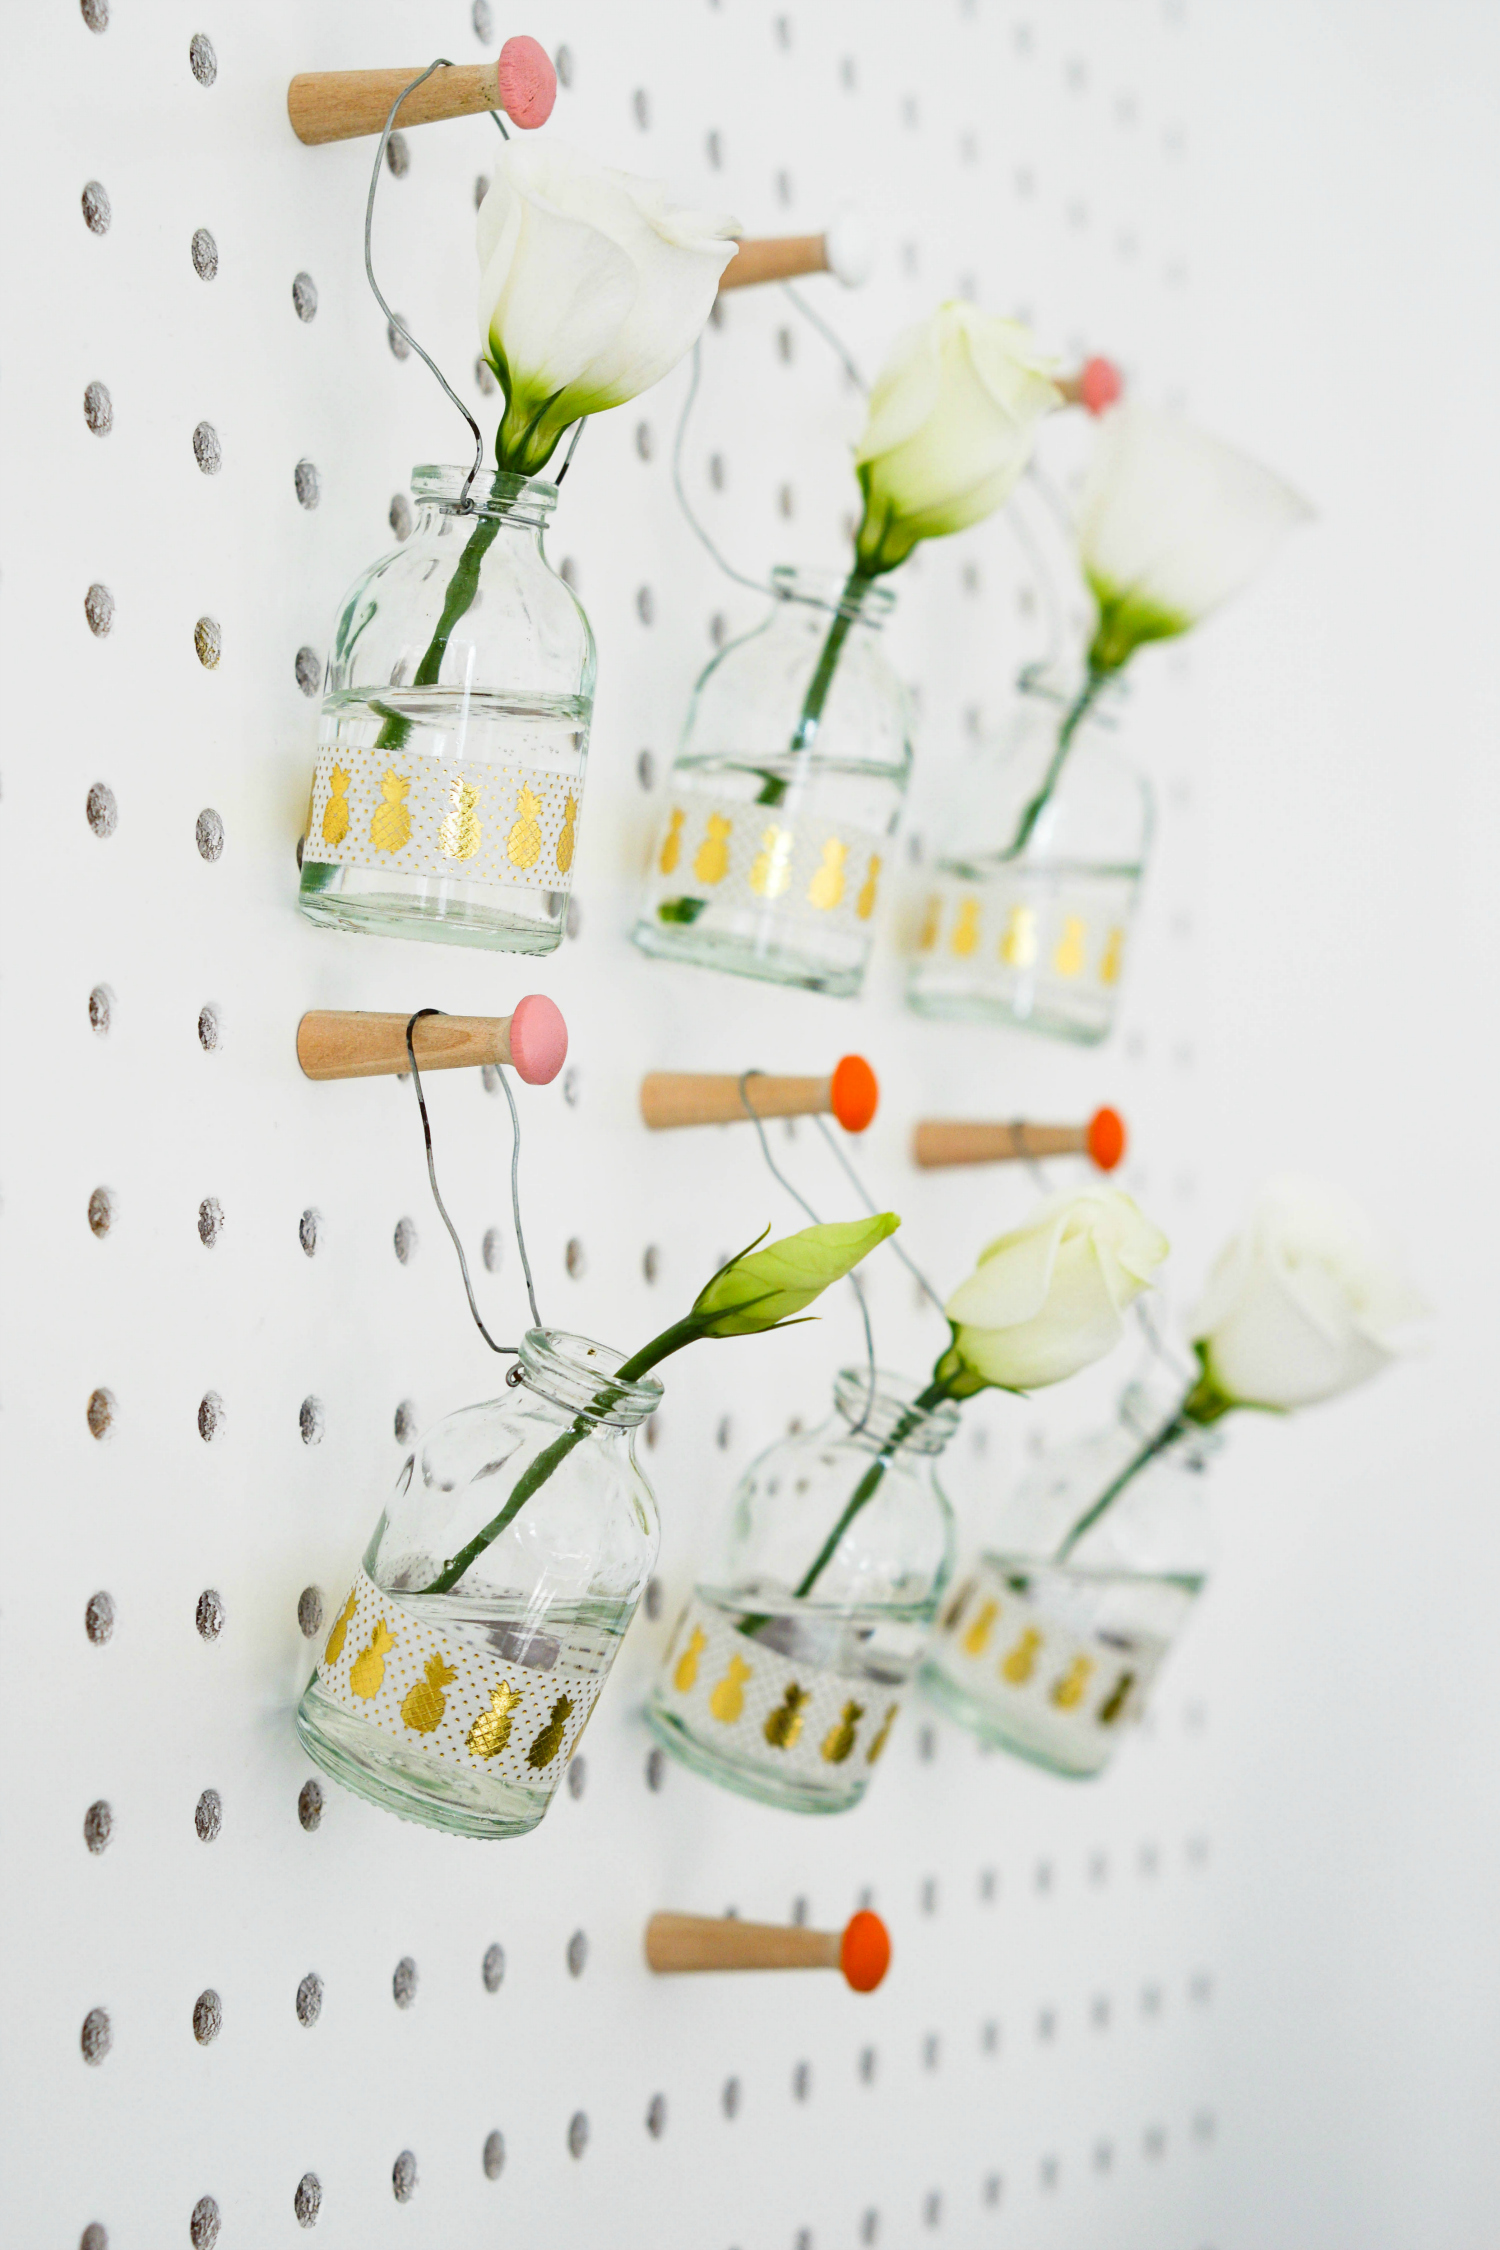 The Ordinary Lovely: Simple pegboard styling to welcome spring